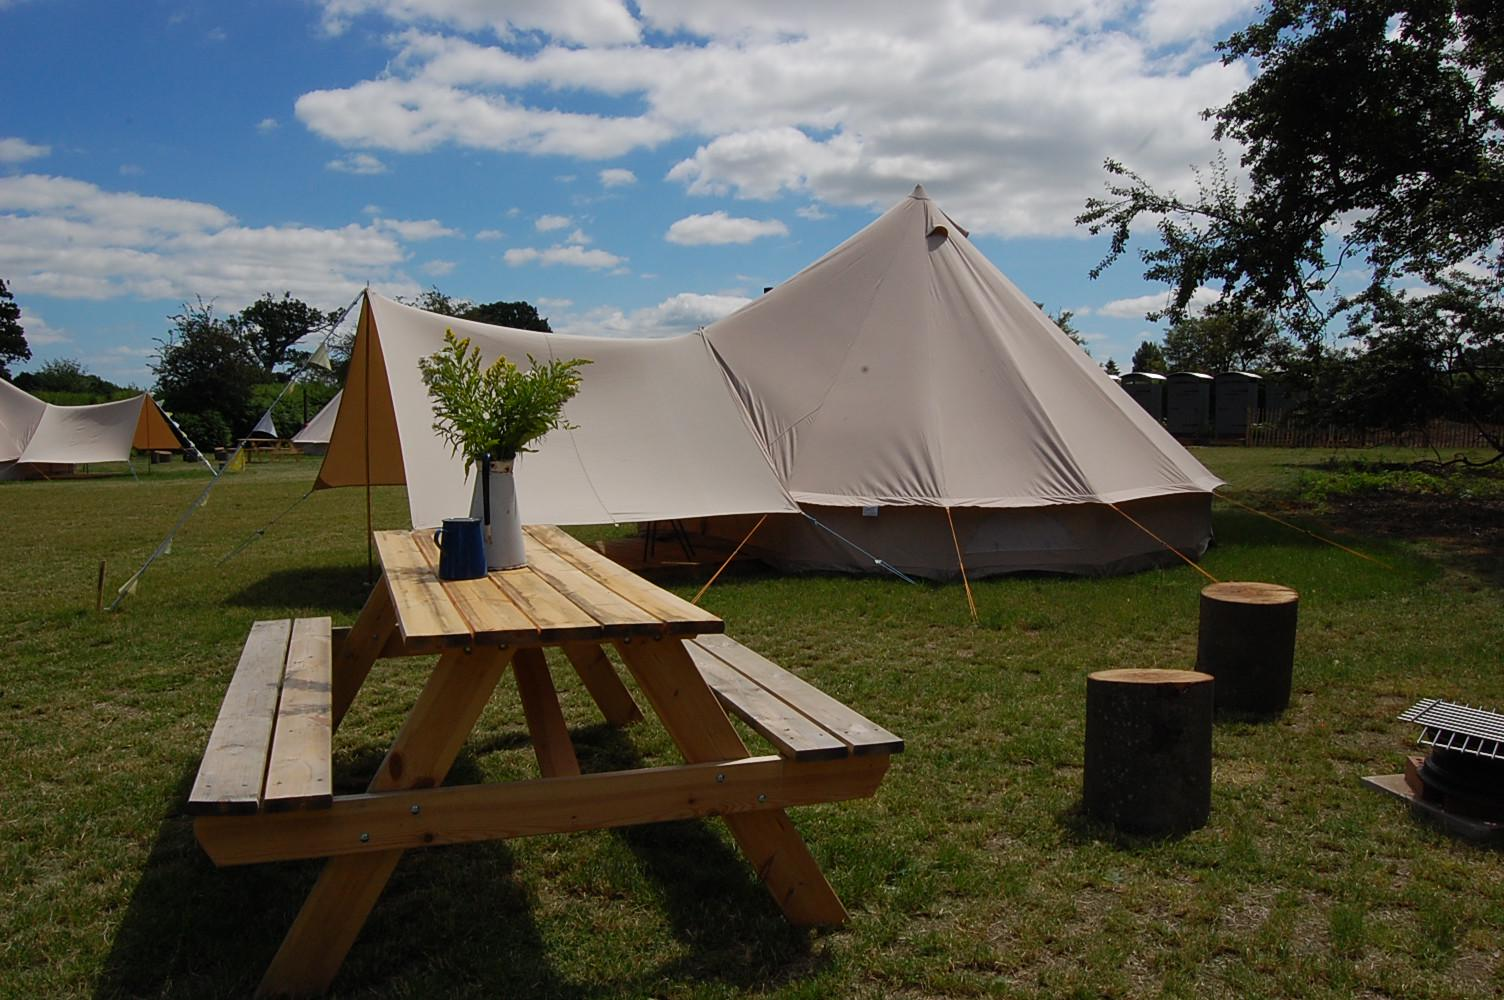 Campsites in Wroxham & Hoveton – Cool Camping